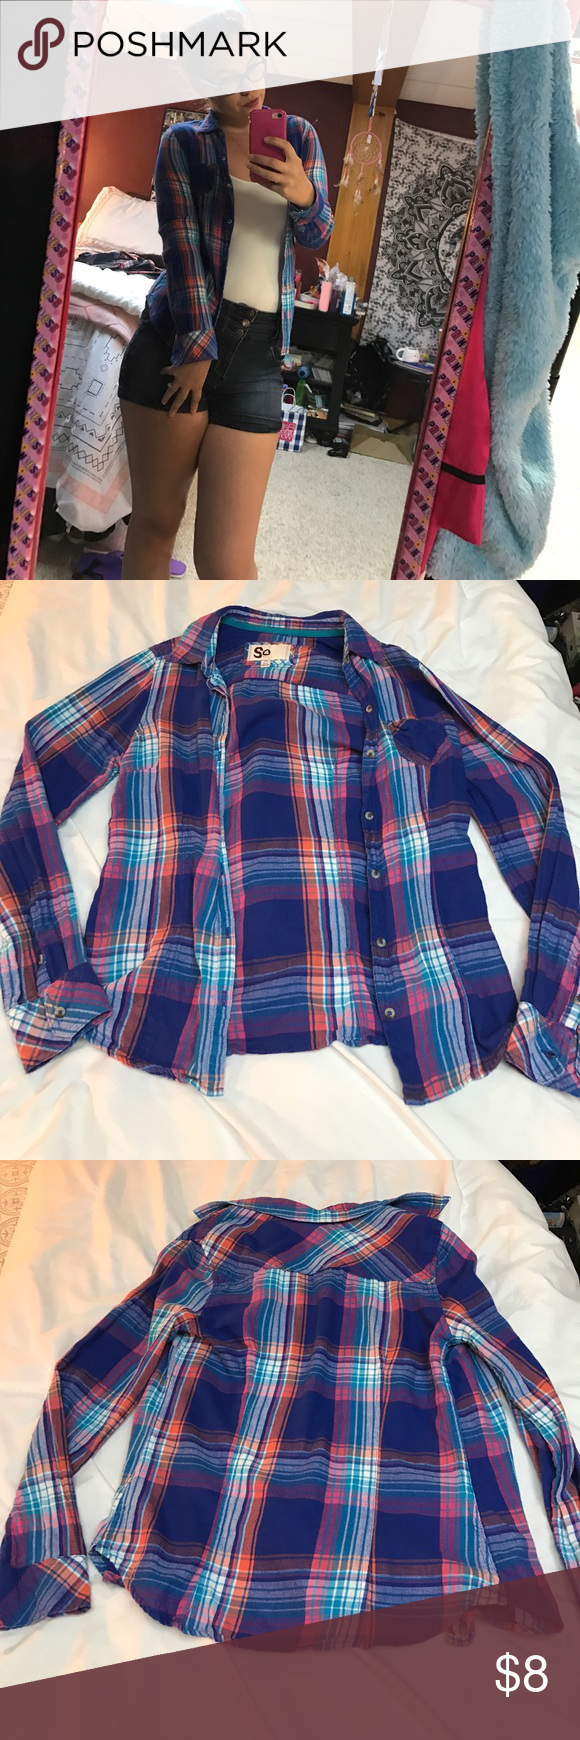 Flannel shirts at kohl's  Fashion flannel  Flannels Pink blue and Cotton